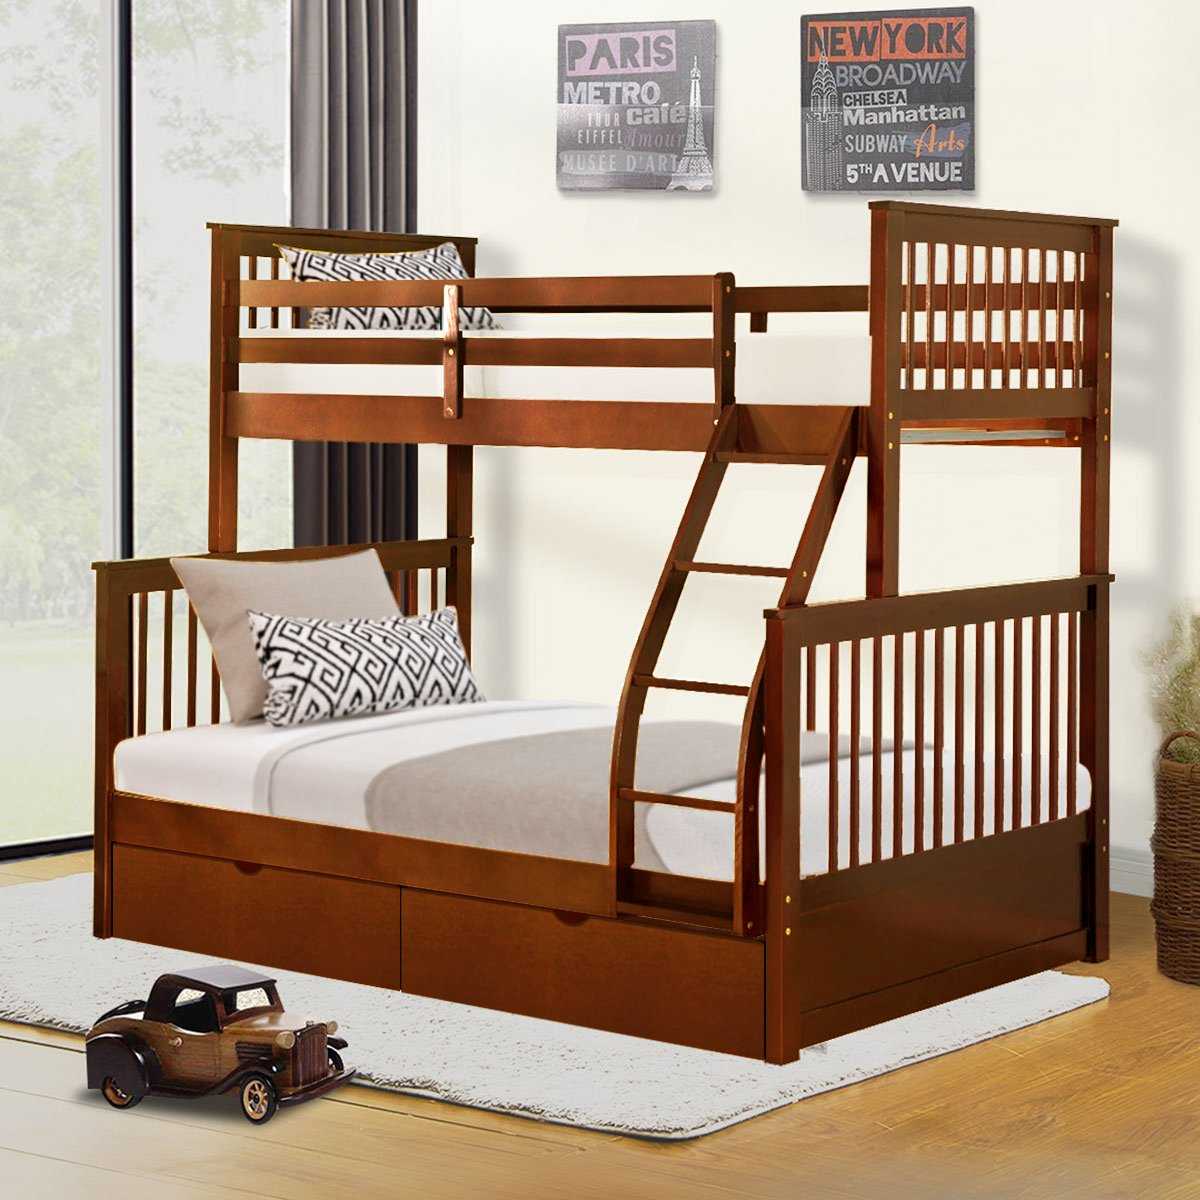 Knocbel Solid Wood Bunk Bed Twin-Over-Full for Kids with Ladders and 2 Storage Drawers Walnut